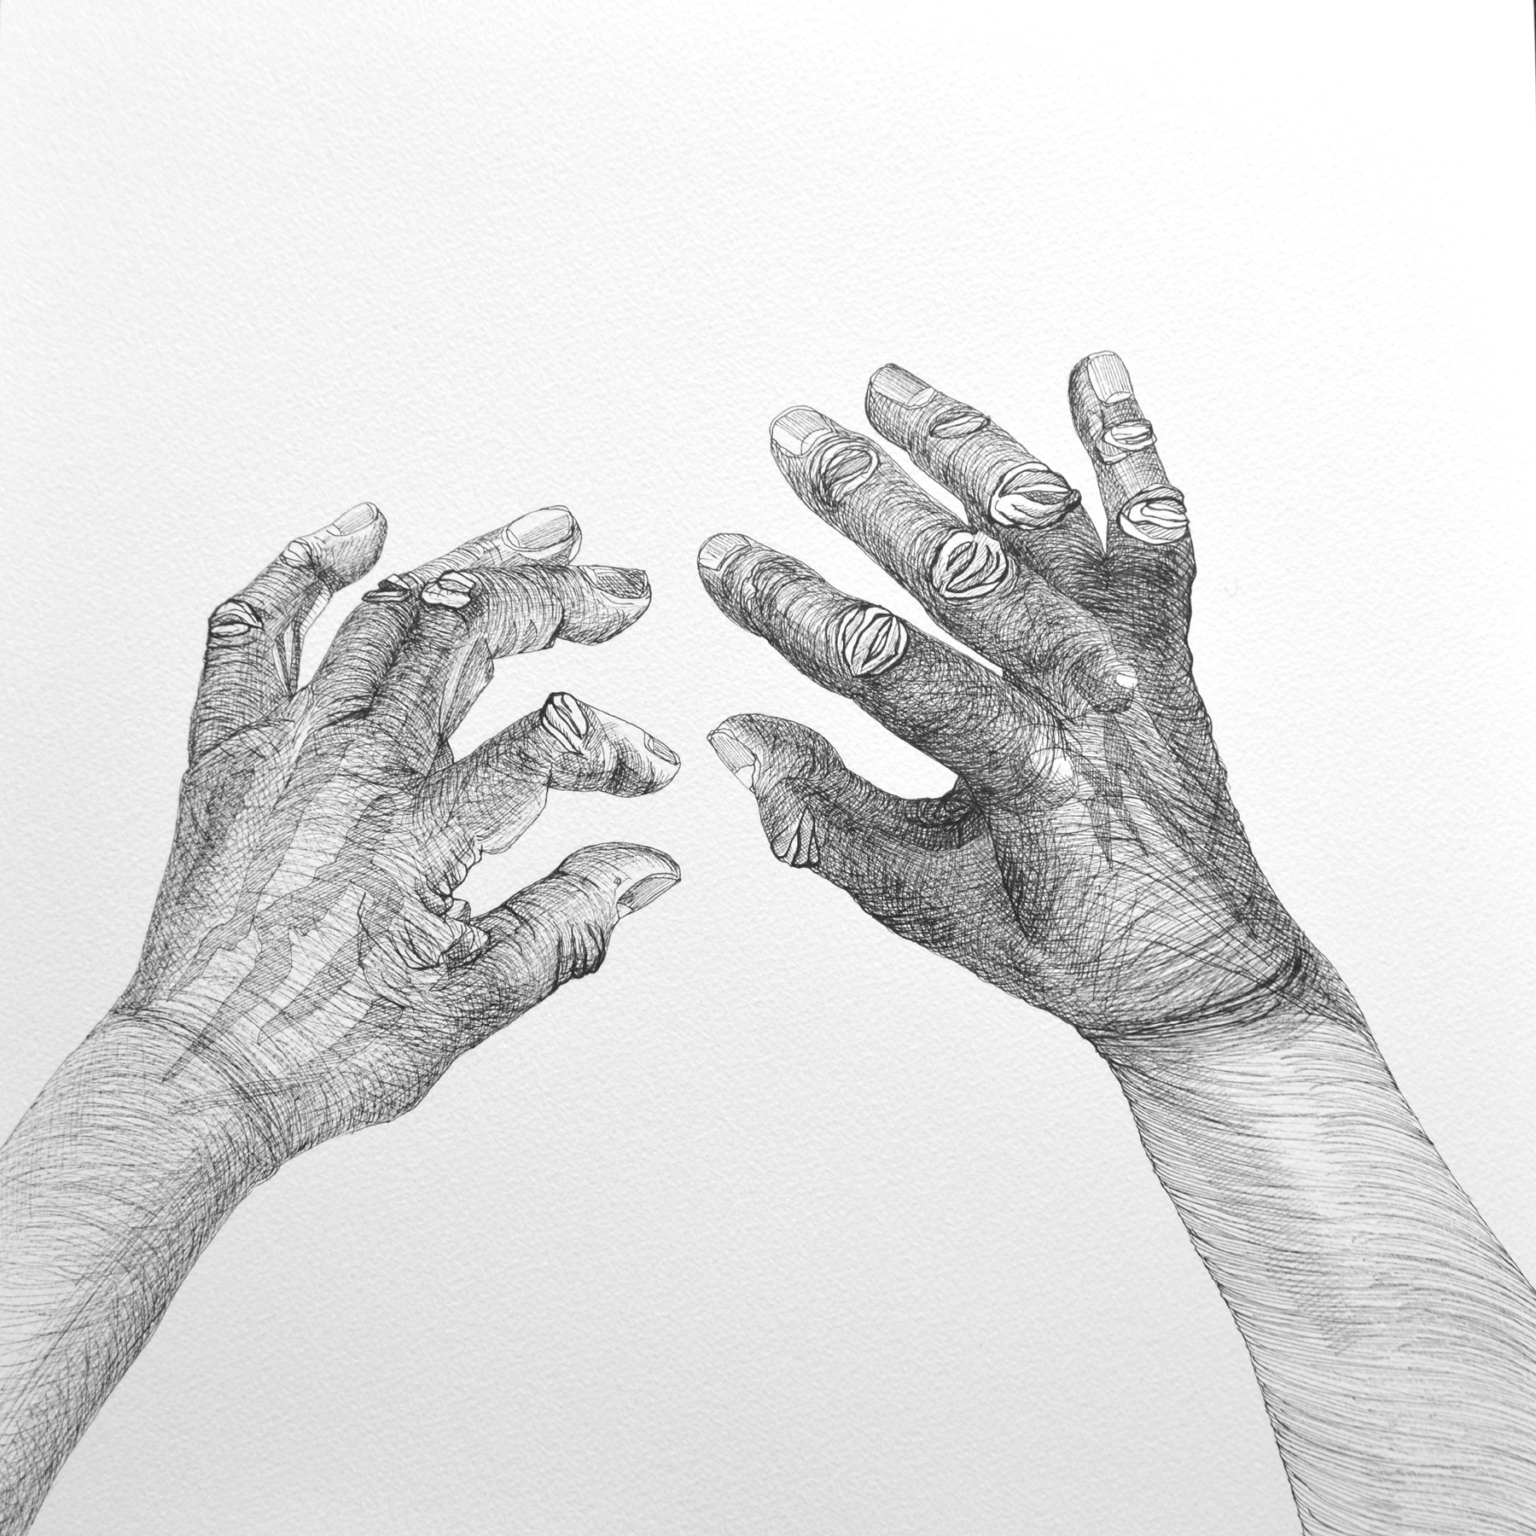 Cally Trench, Hands 3 (2018), Ink on paper, 40 x 40 cm